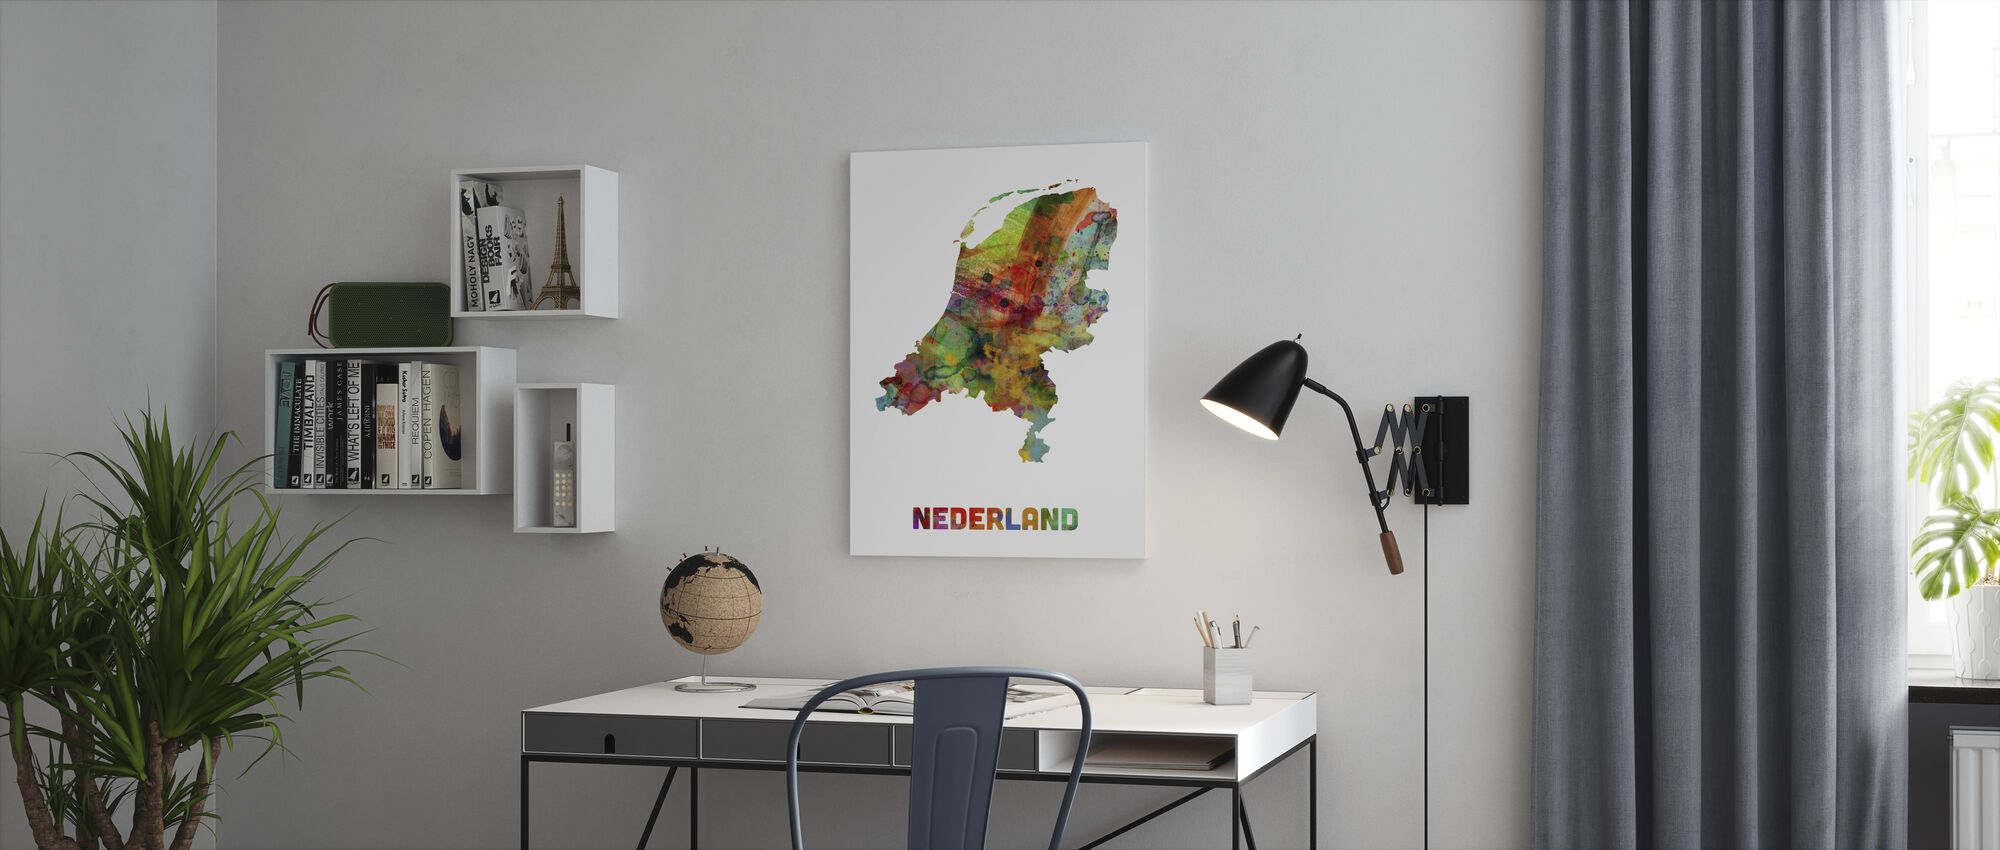 Netherlands Watercolor Map - Canvas print - Office